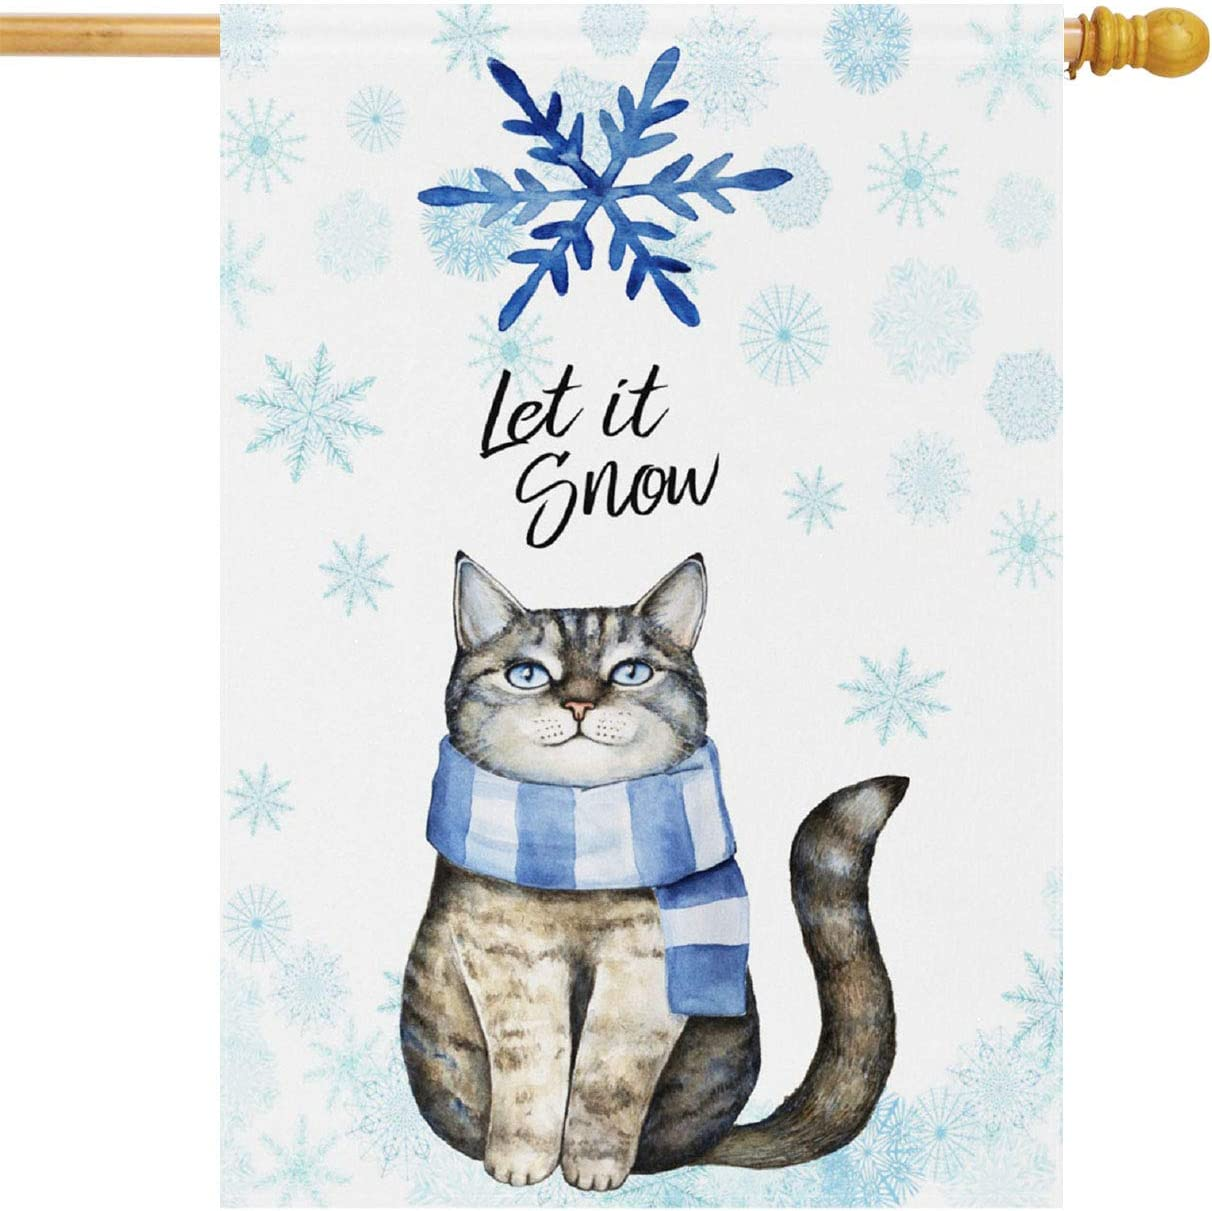 Wamika Winter House Flag 28 x 40 Double Sided, Cute Cat Kitten Let Snow Blue Snowflake Welcome Holiday Yard Outdoor Garden Flags Banner Party Home Decor Christmas Decorations